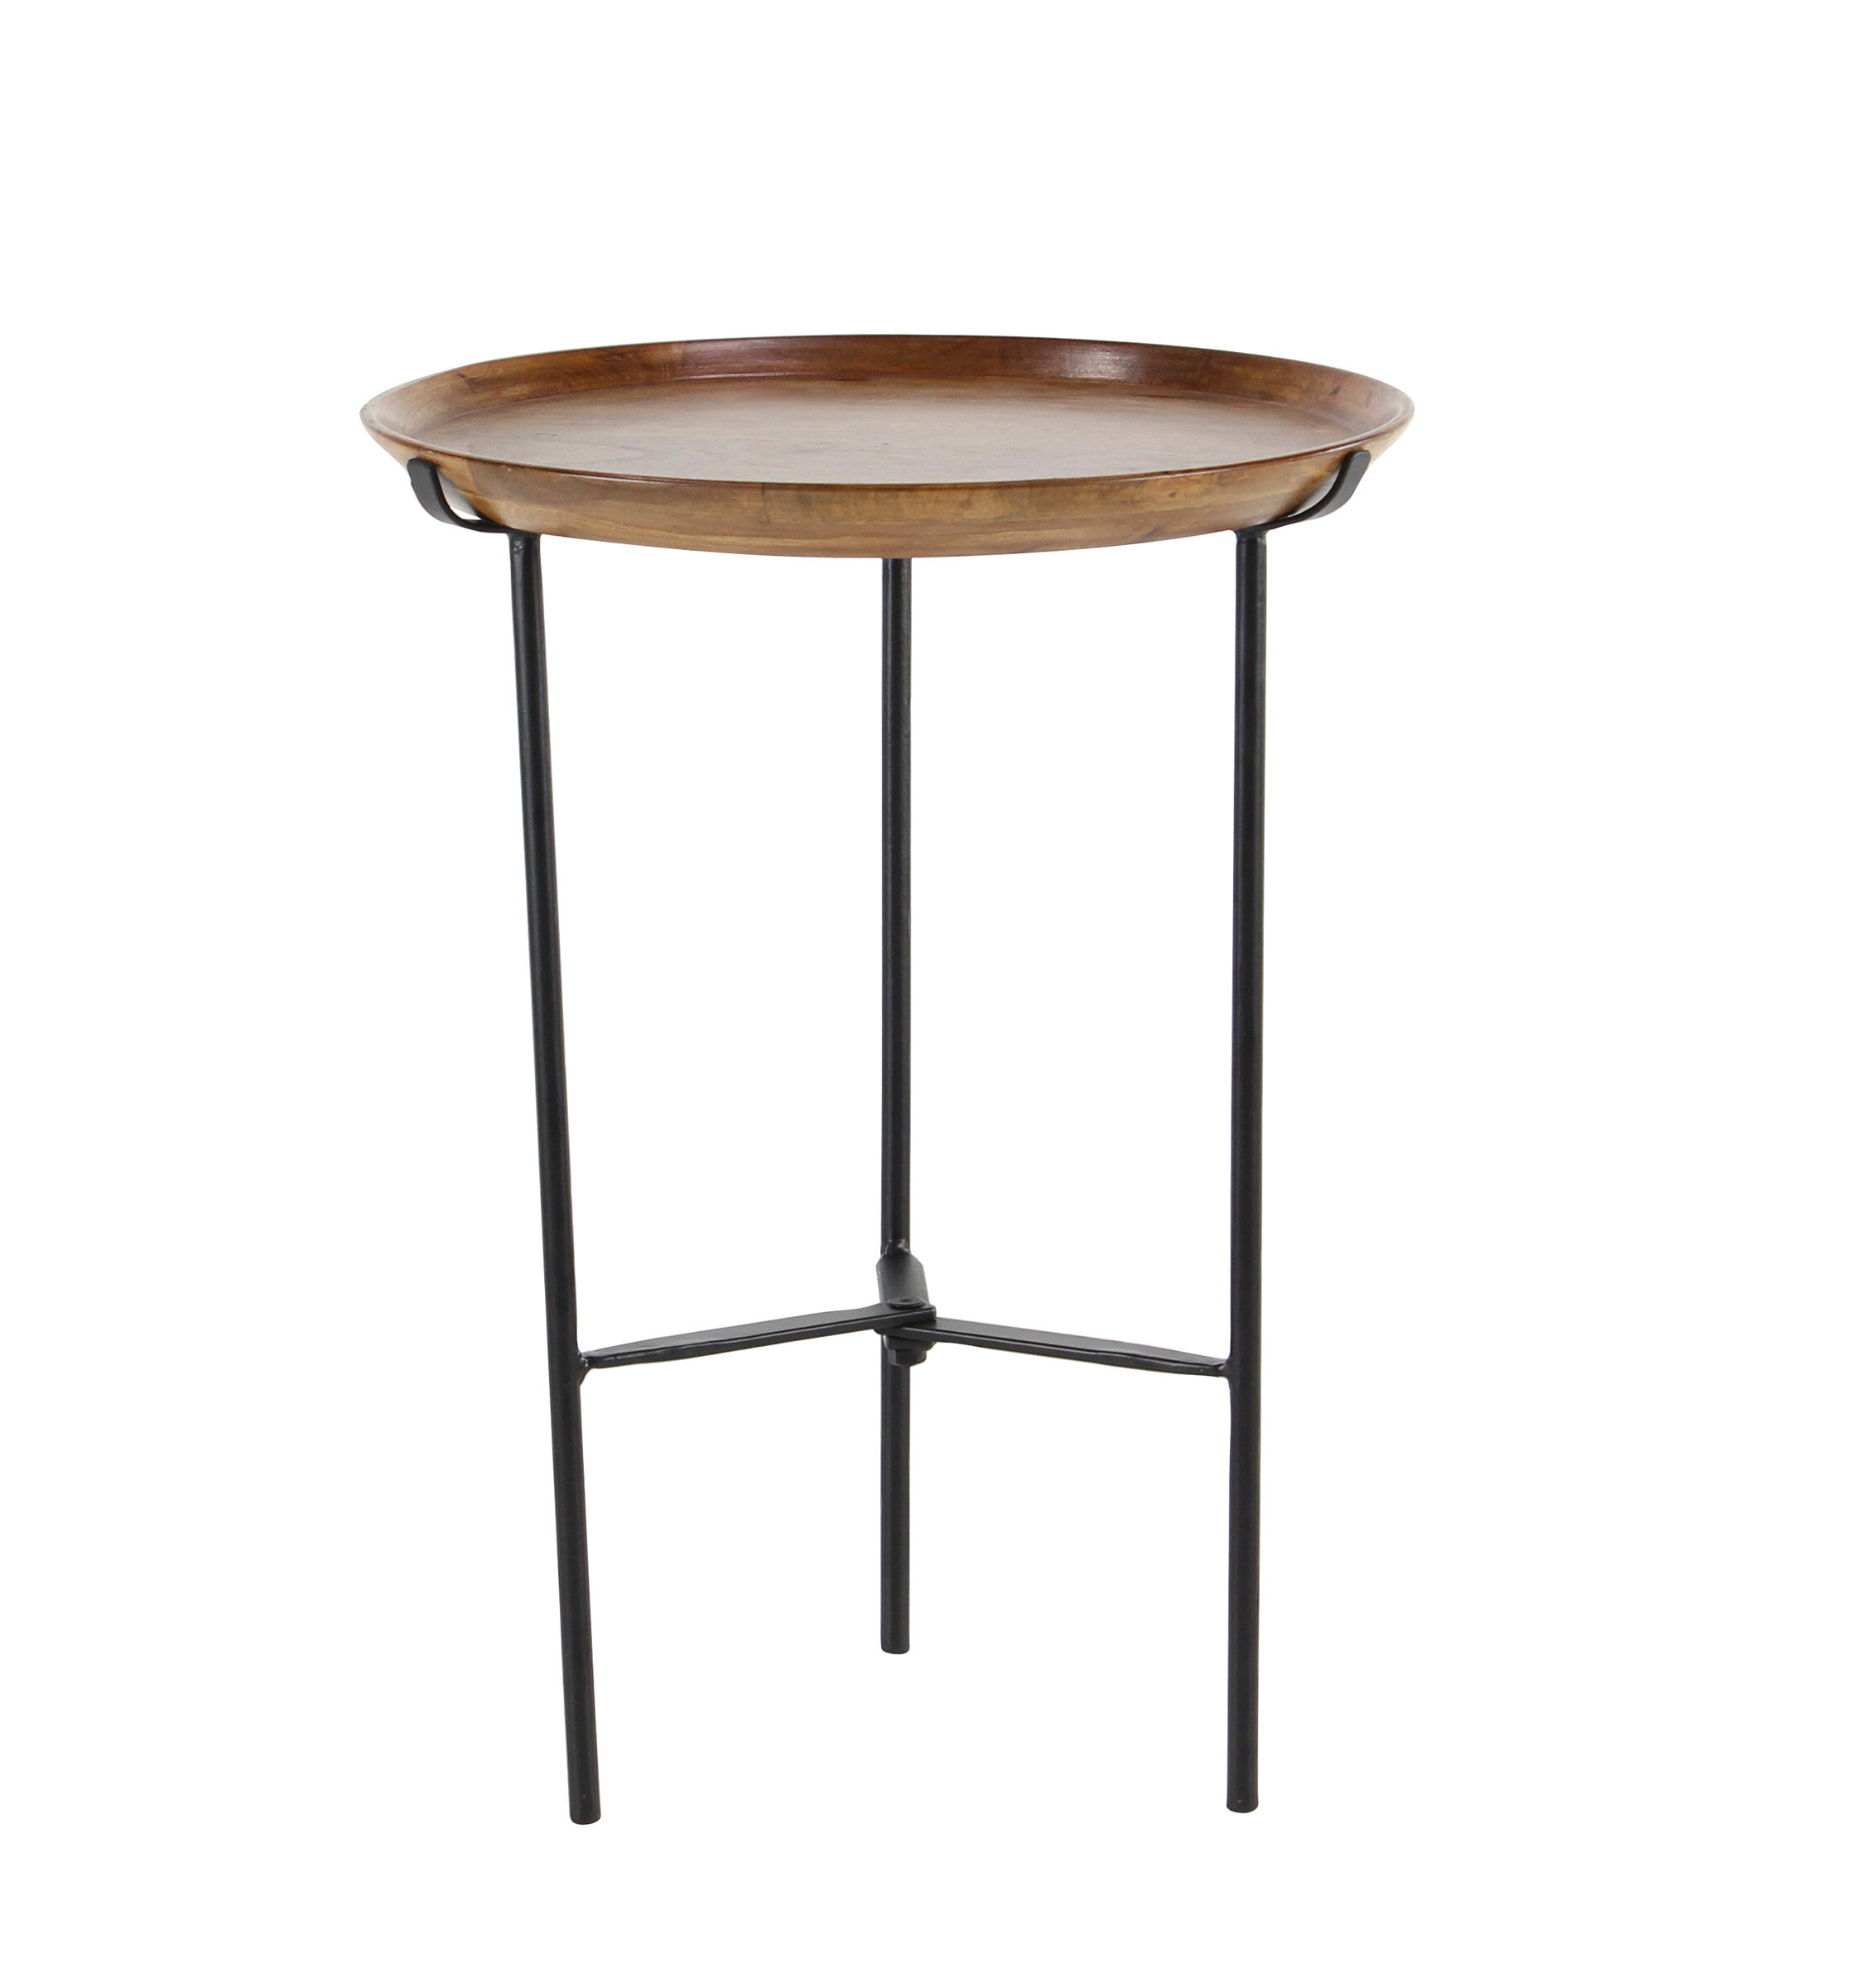 Union rustic woburn rustic round end table wayfair